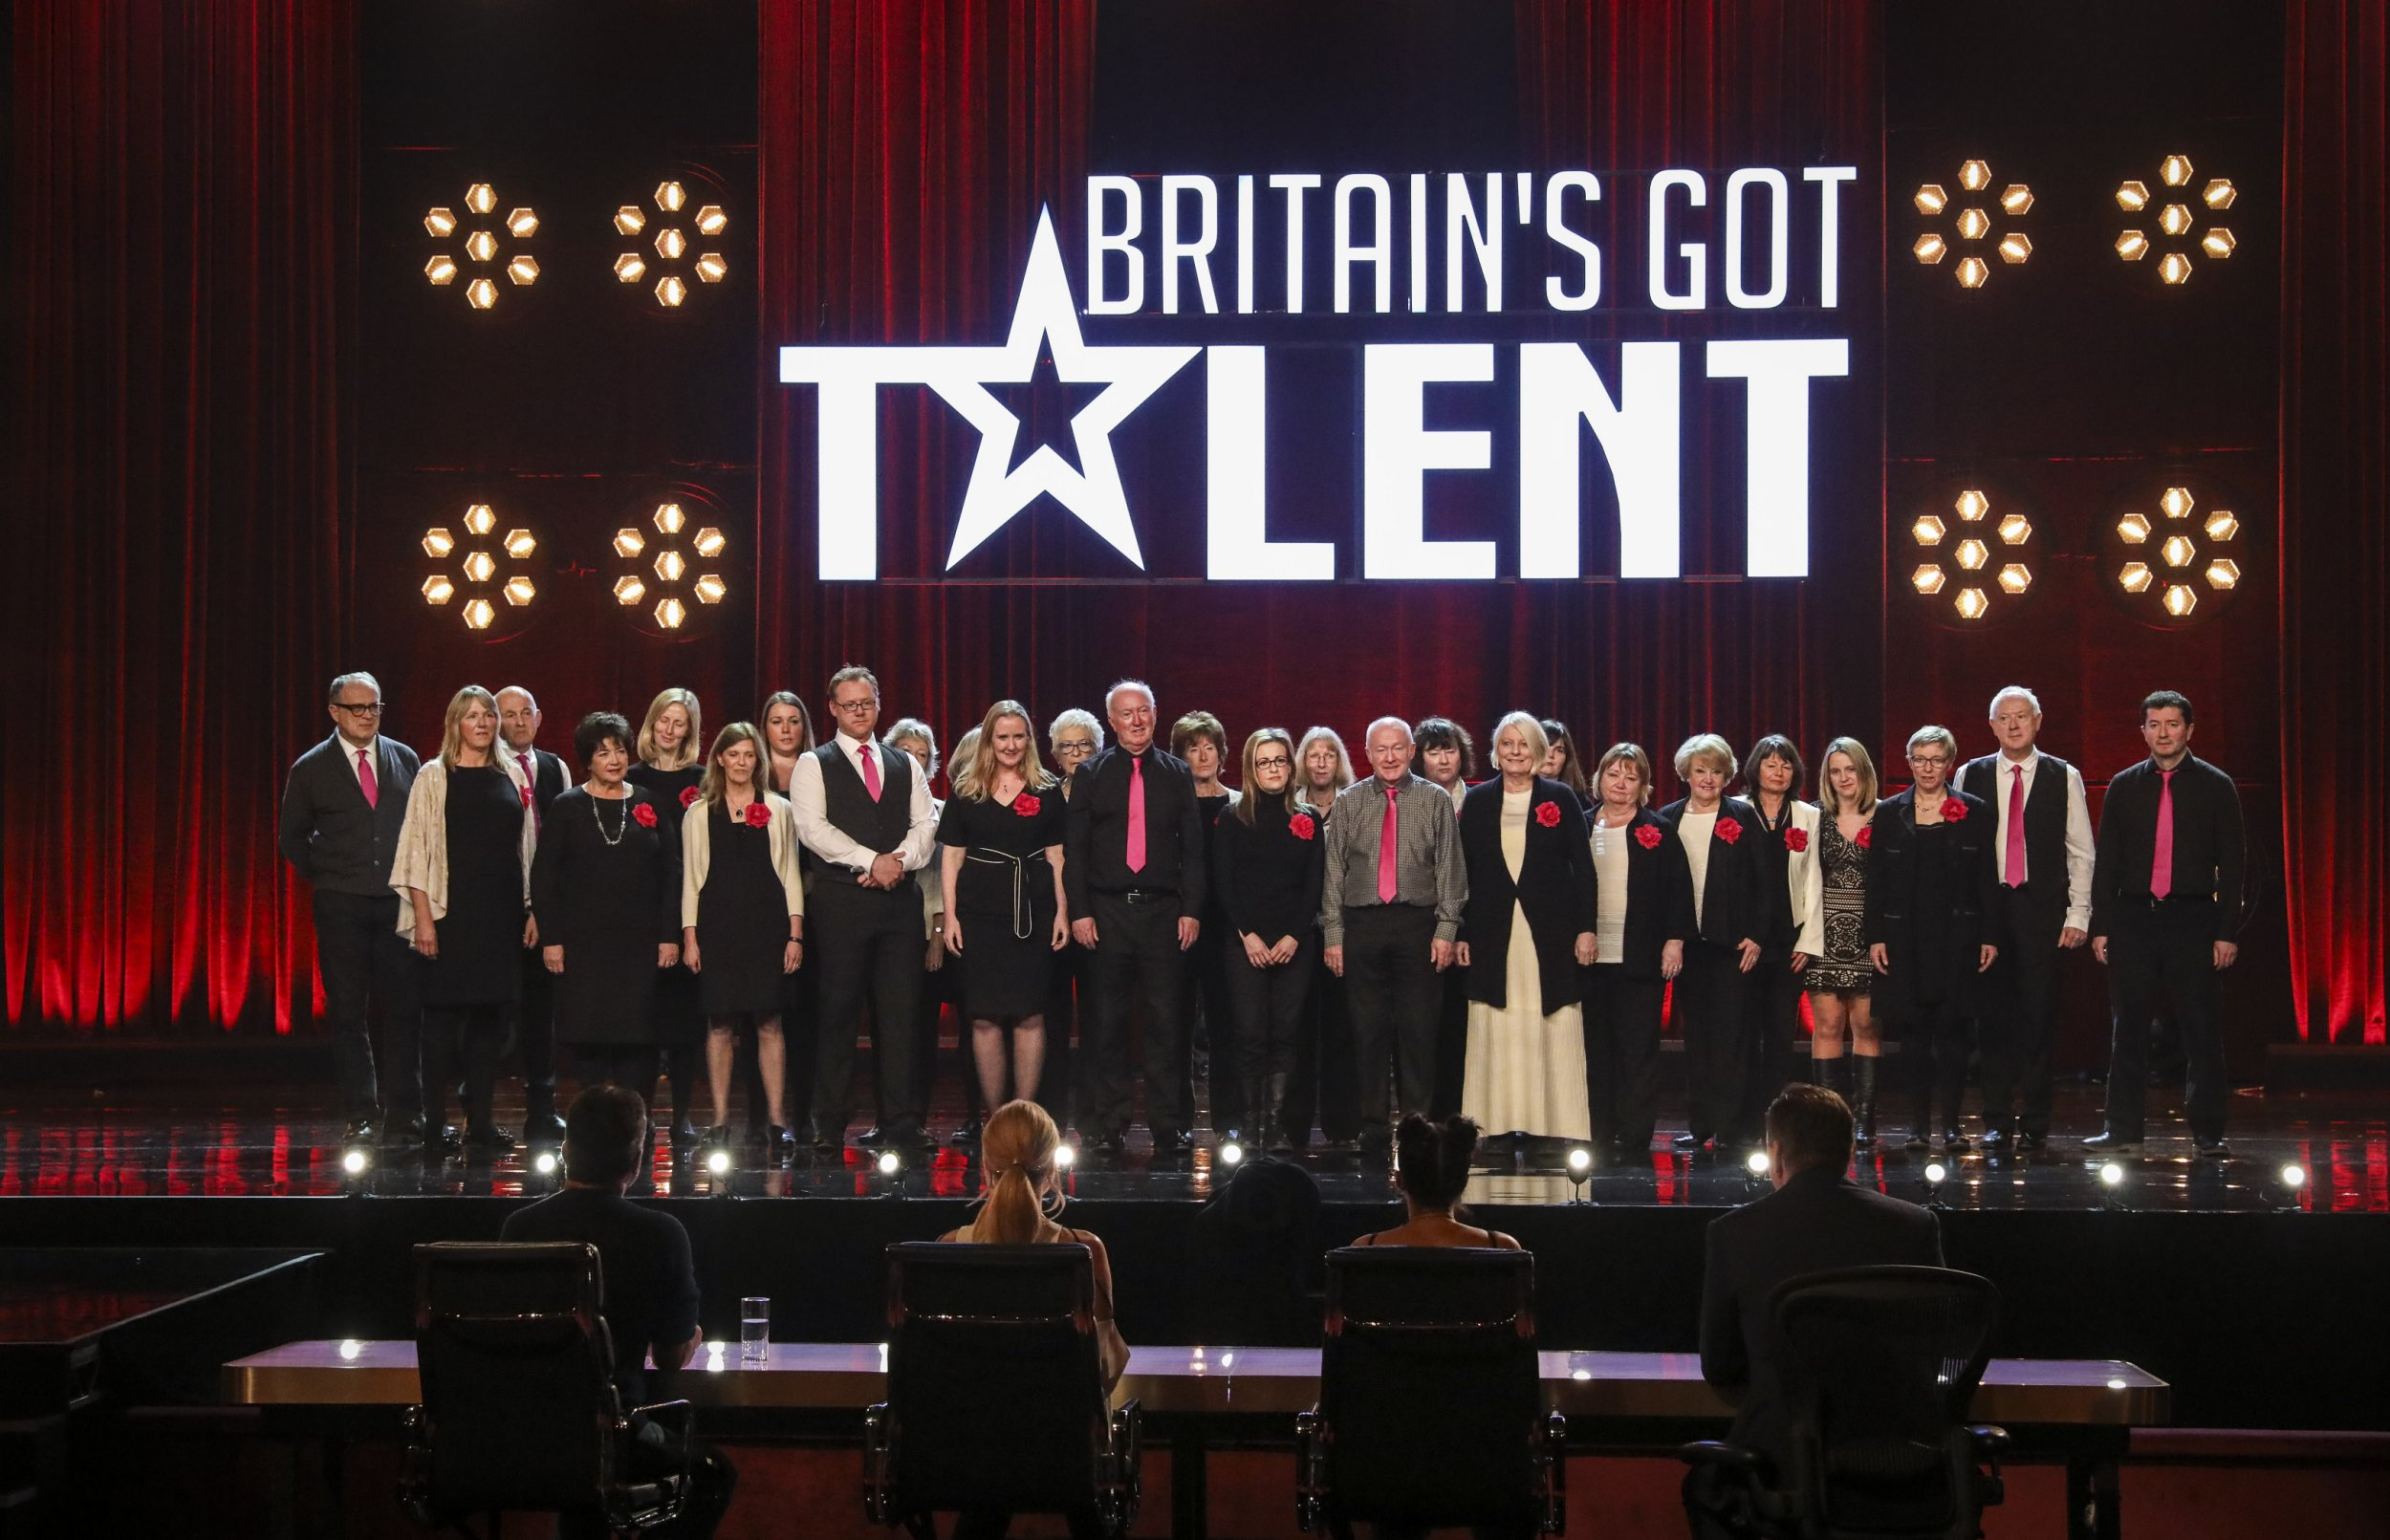 **STRICTLY EMBARGOED UNTIL 21:20 BST SATURDAY MAY 27TH** Judges and contestants are seen on this week's Britain's Got Talent, due to air Saturday May 27th. Pictured is Missing People Choir.